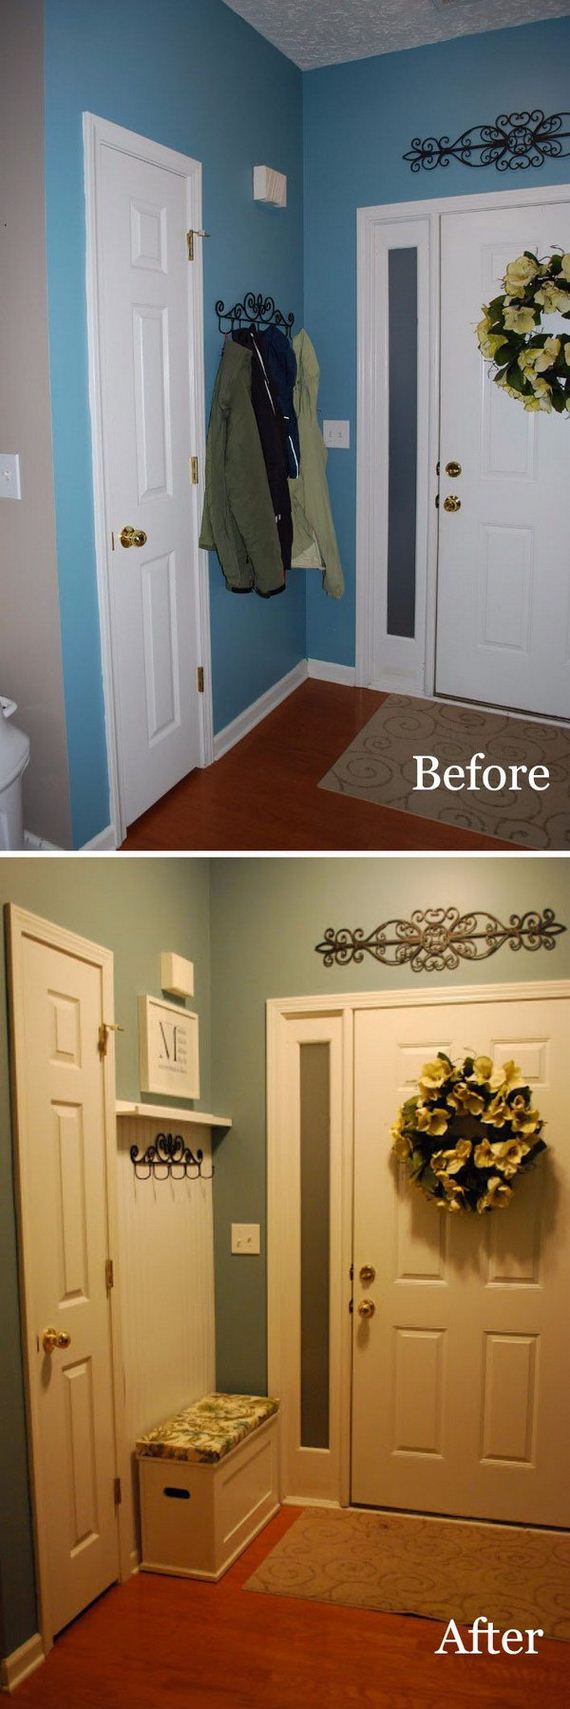 09-amazing-entryway-makeover